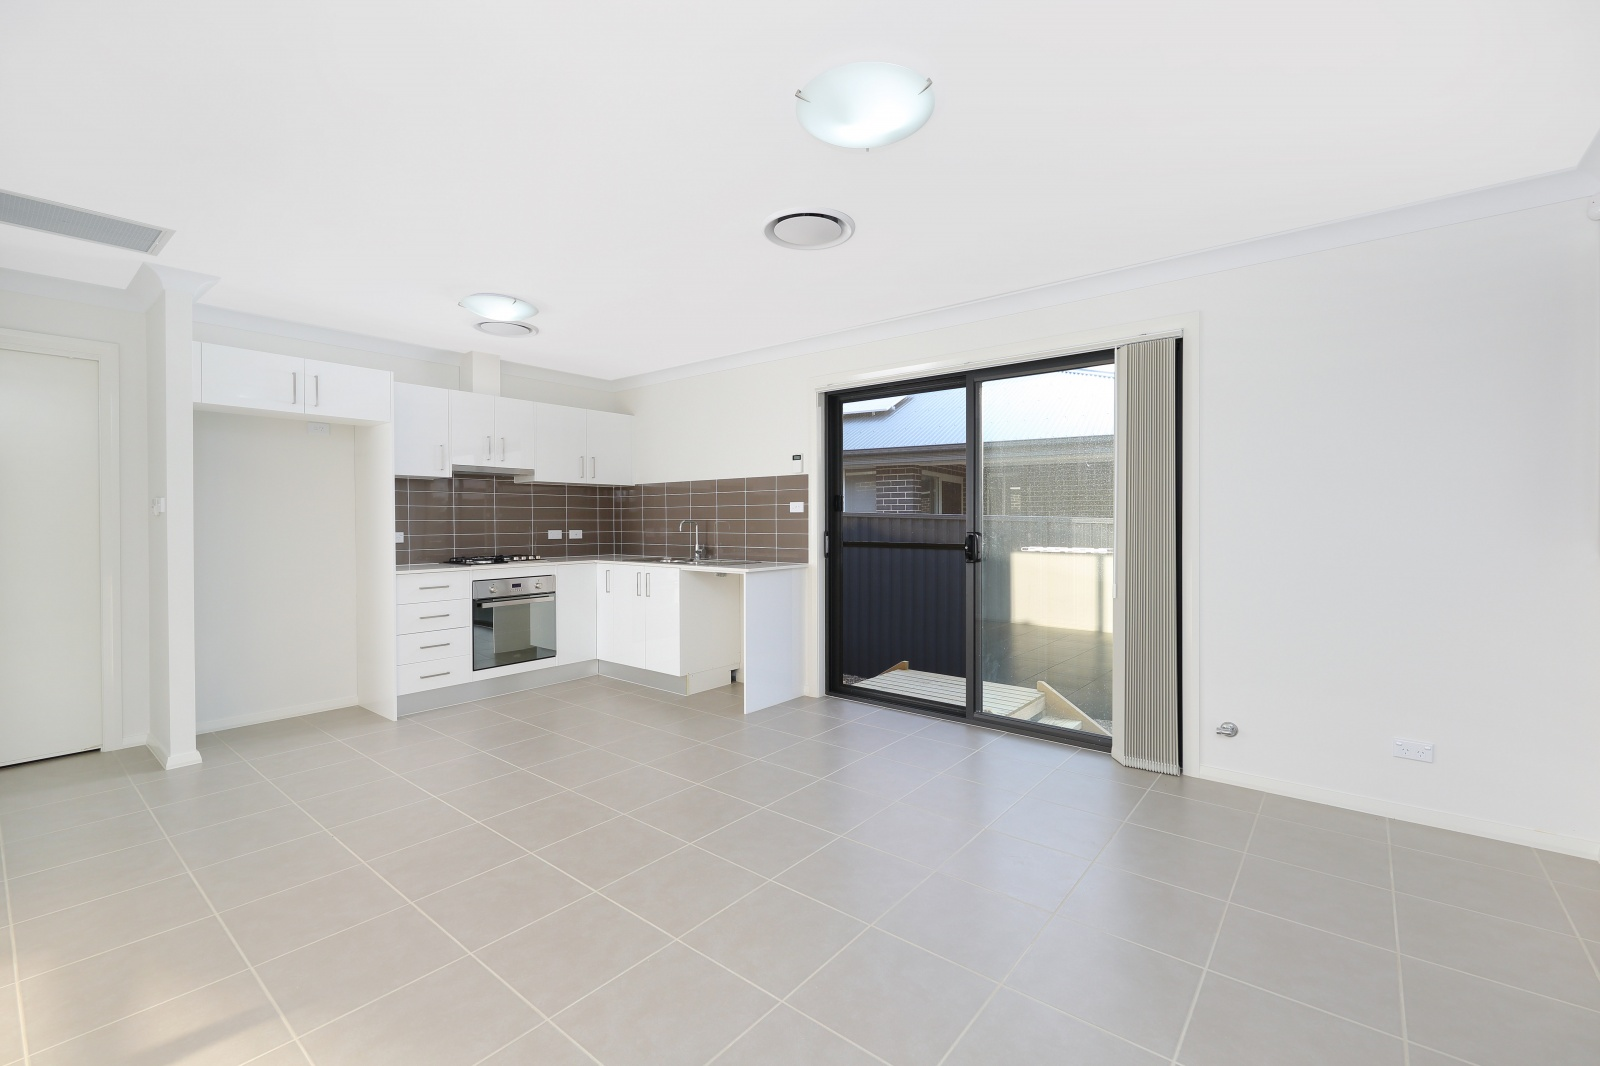 4a Eade Street,Oran Park,NSW,2 Bedrooms Bedrooms,1 BathroomBathrooms,House,Eade Street,1206